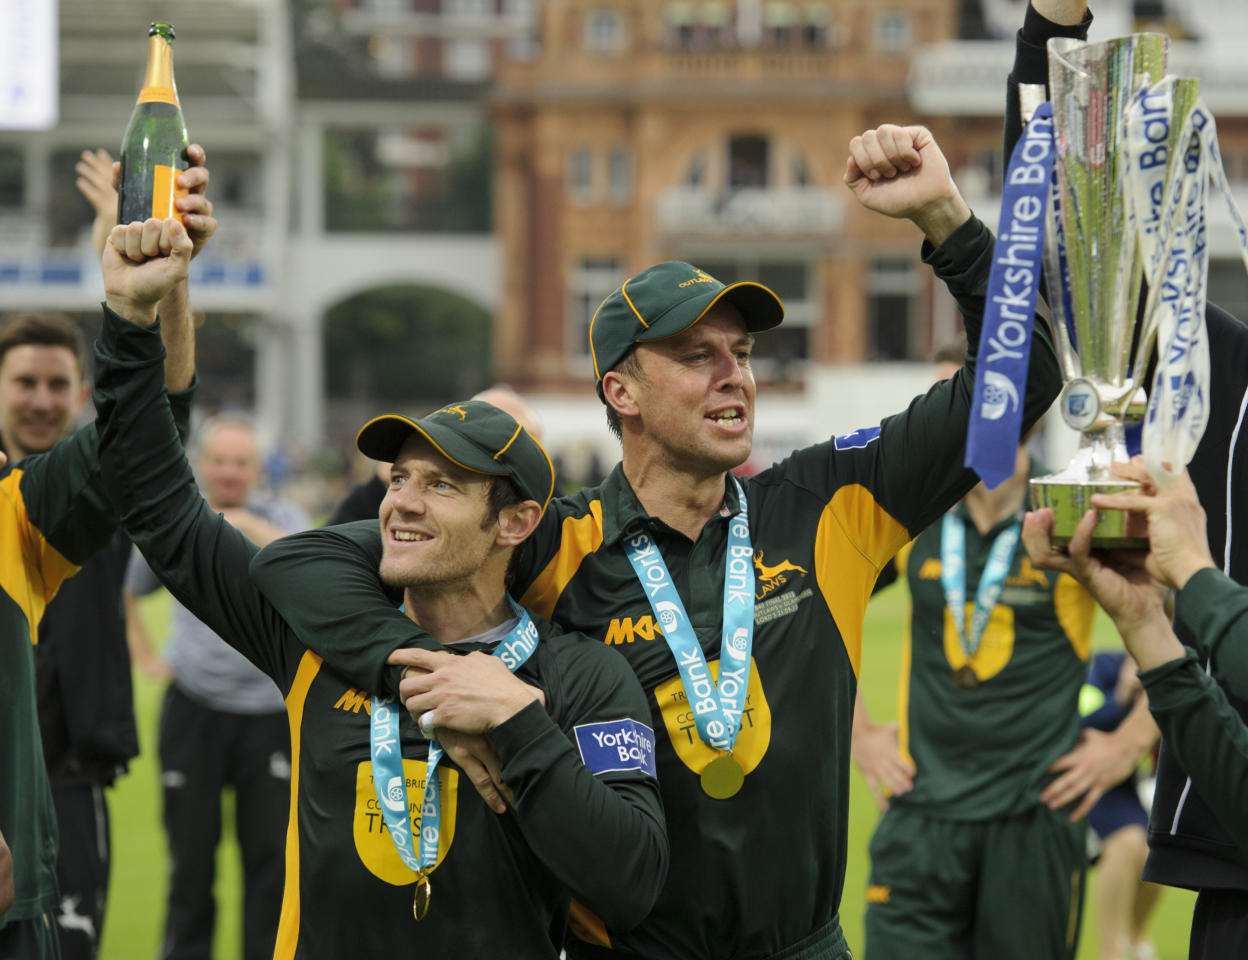 Nottinghamshire's Graeme Swann and Chris Read celebrate victory during the Yorkshire Bank Pro40 Final at Lord's Cricket Ground, London.